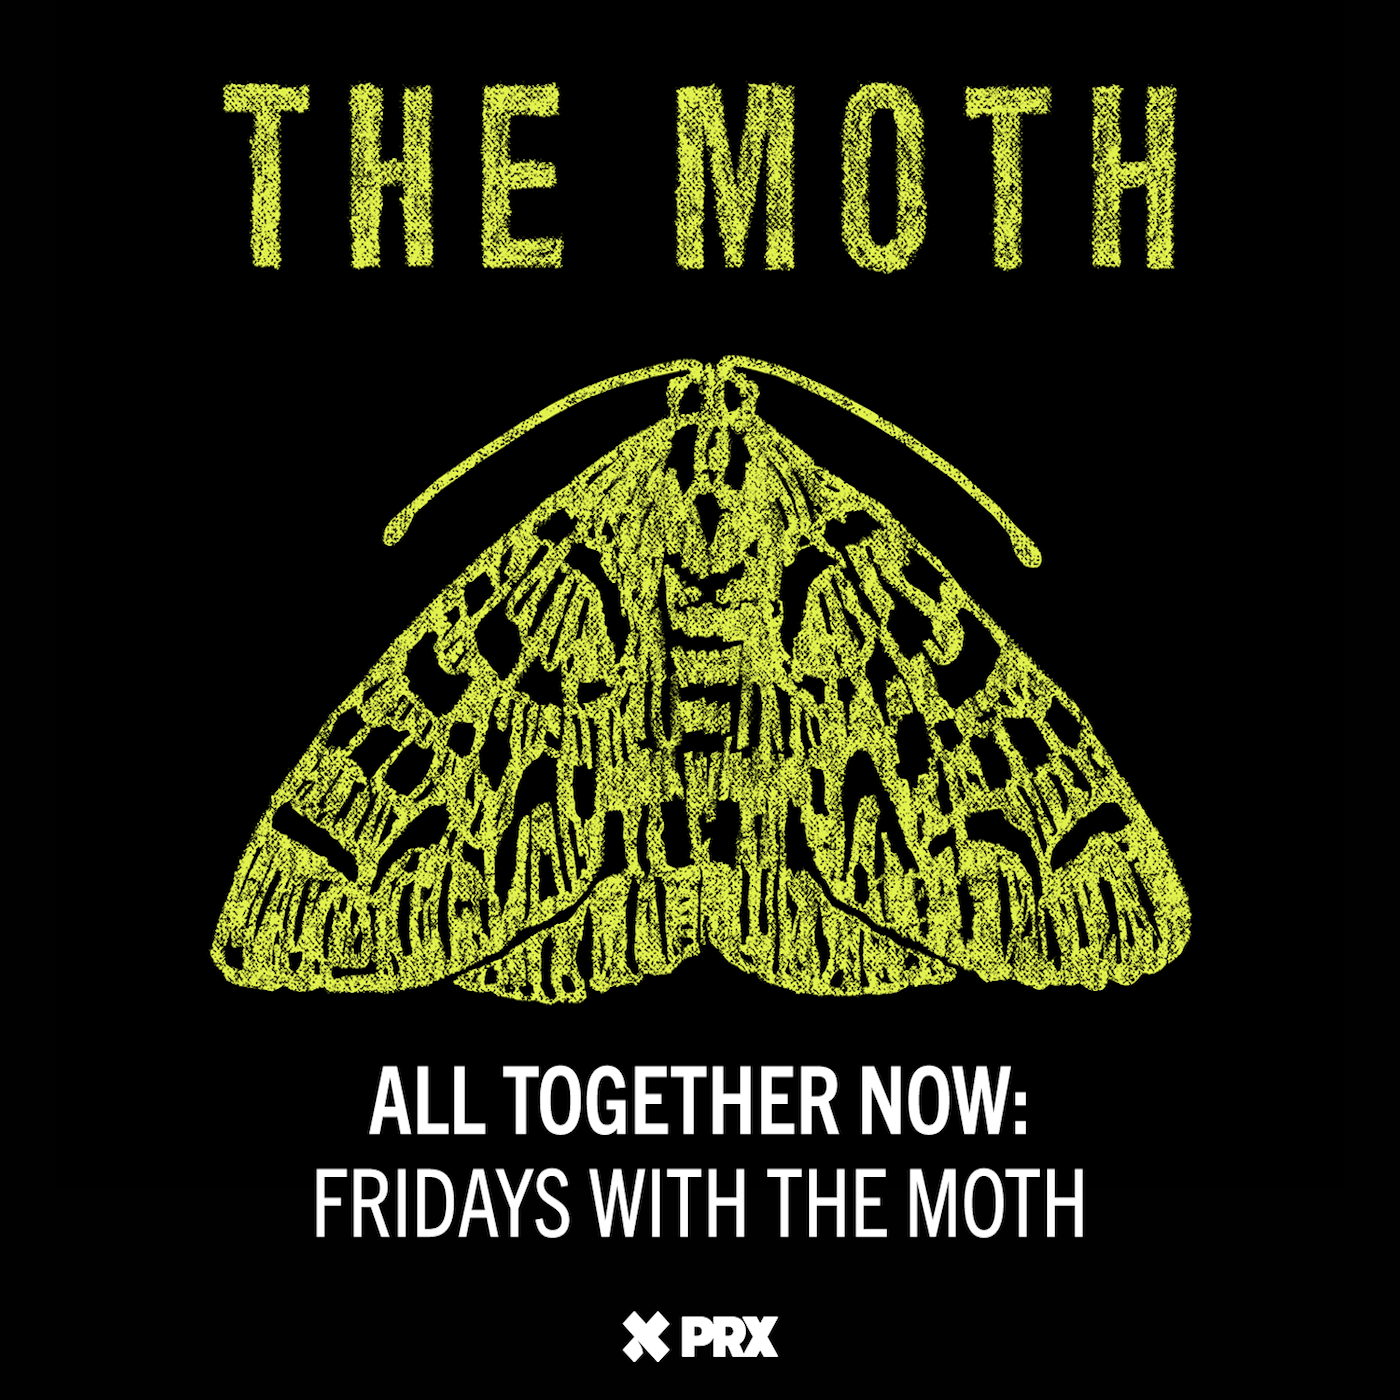 All Together Now: Fridays with The Moth - Hope Wade